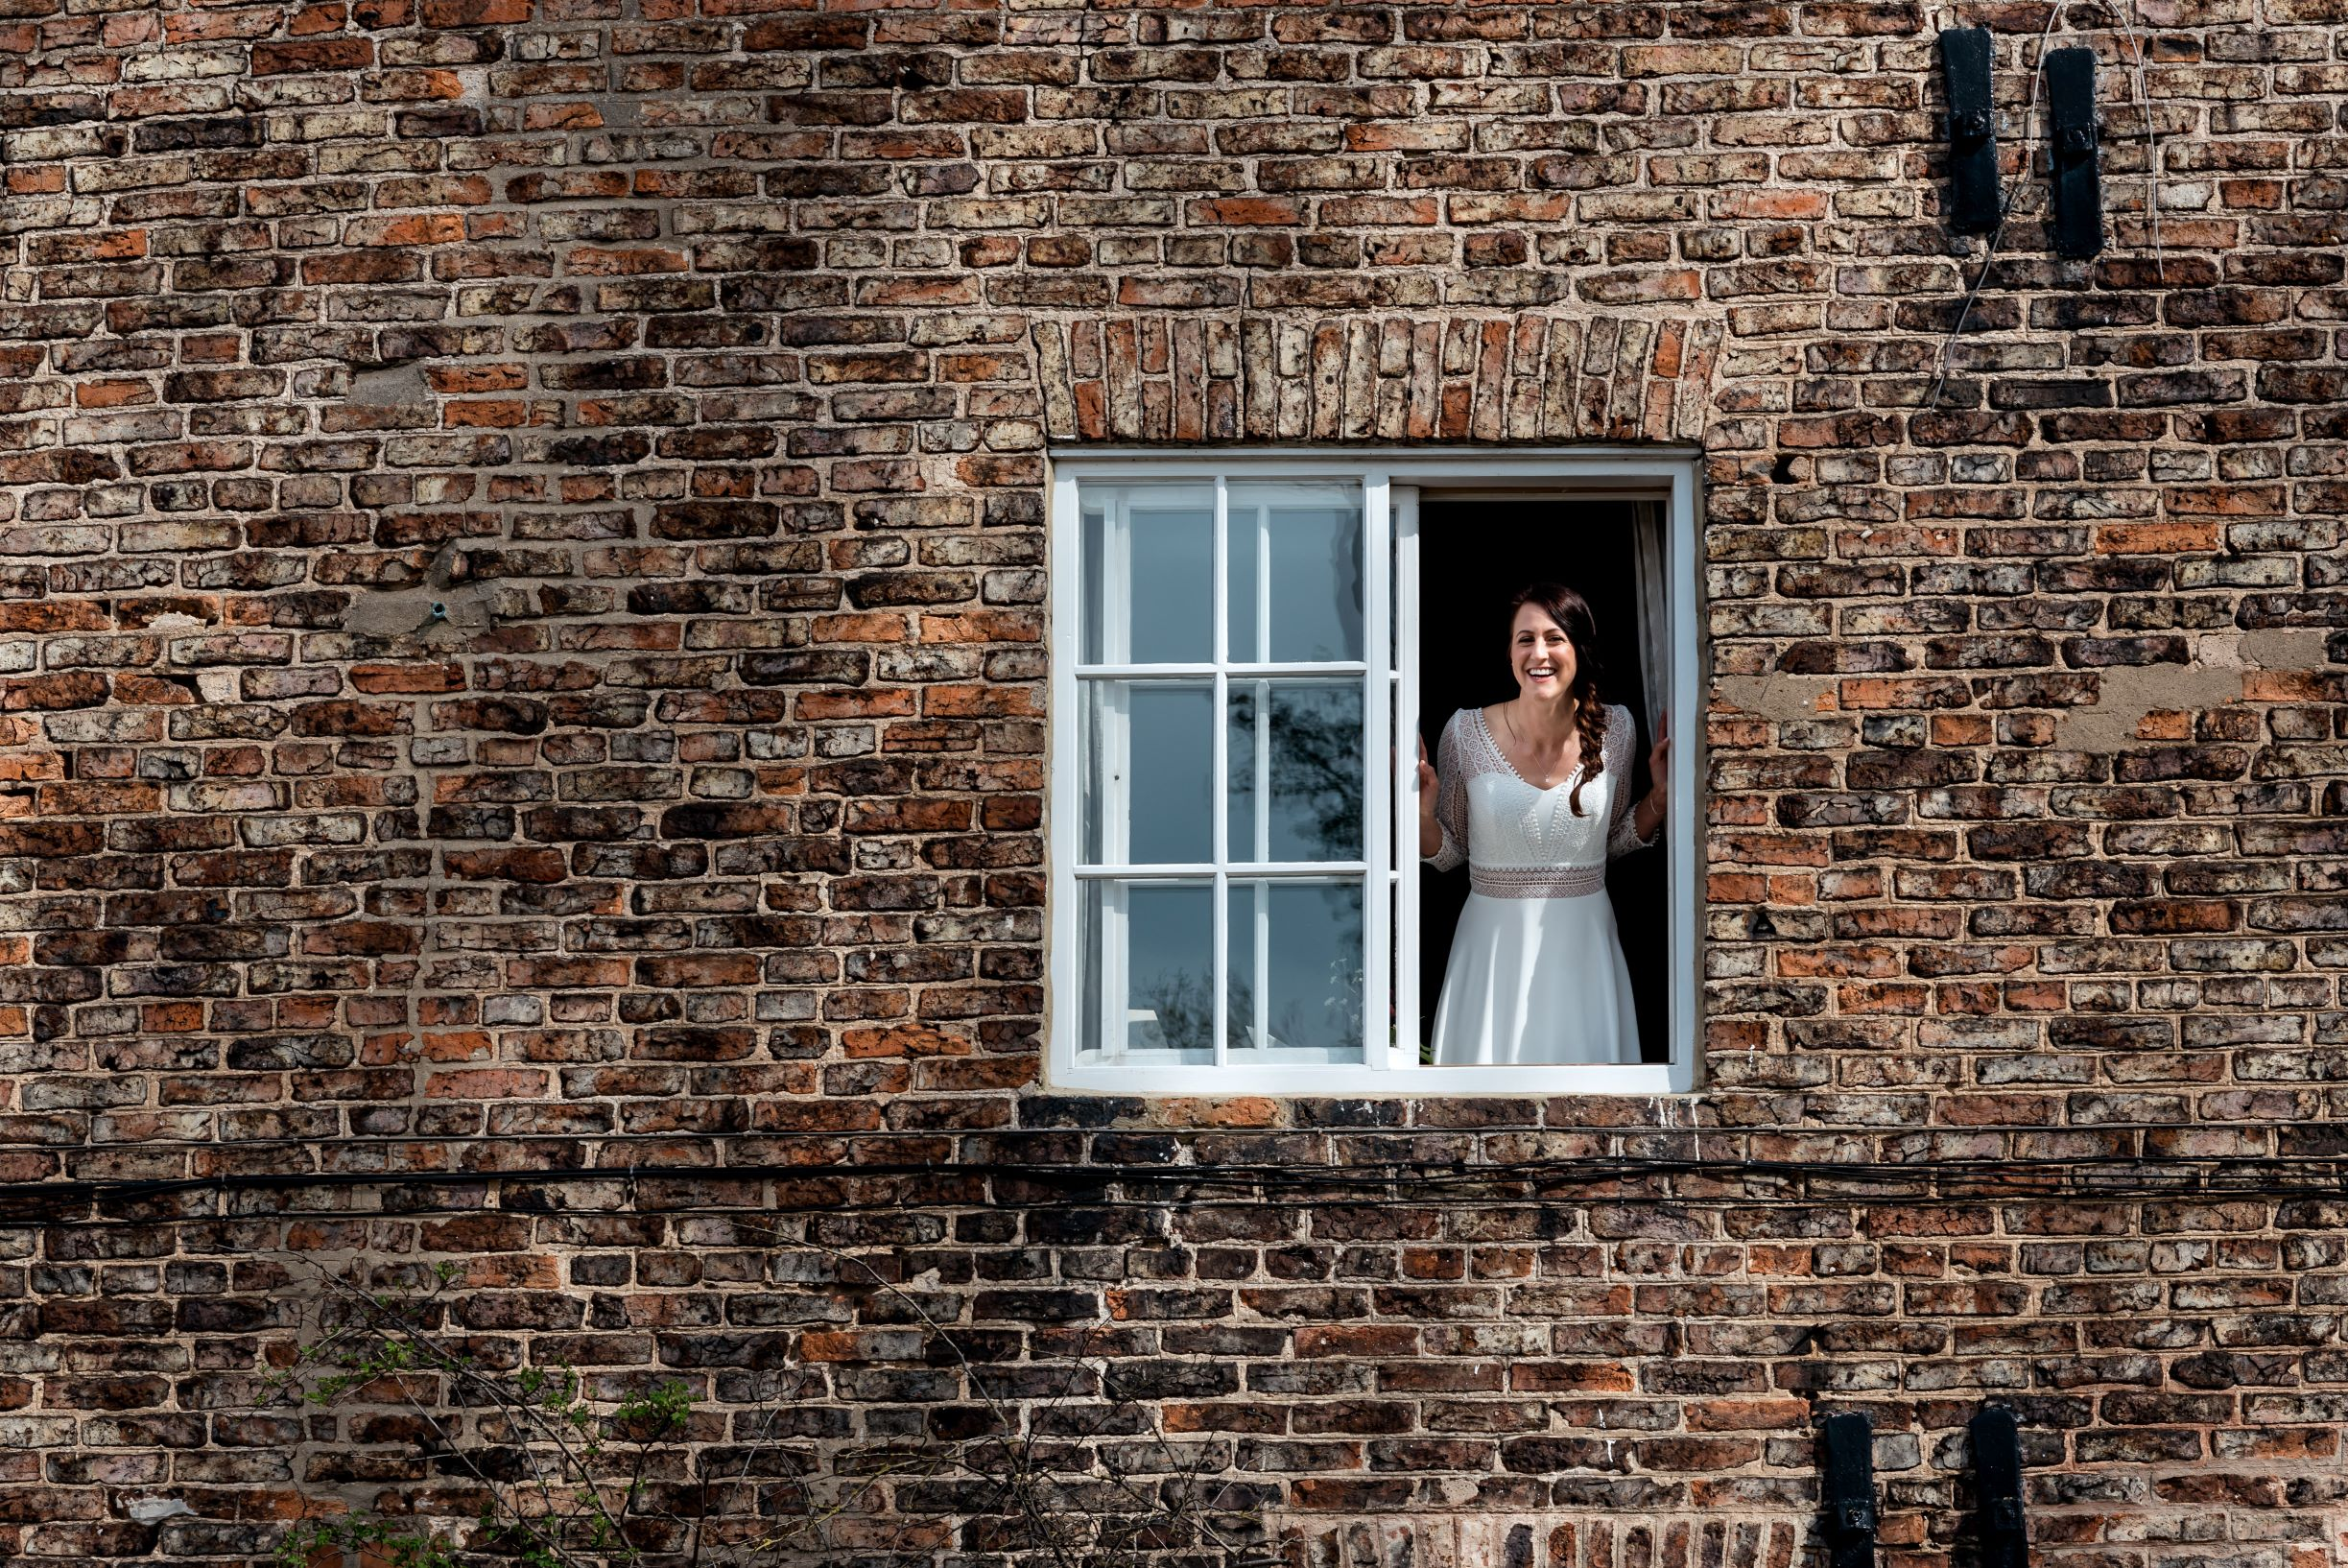 Laura greets the adoring masses from the window of The Normans Cottage.jpg